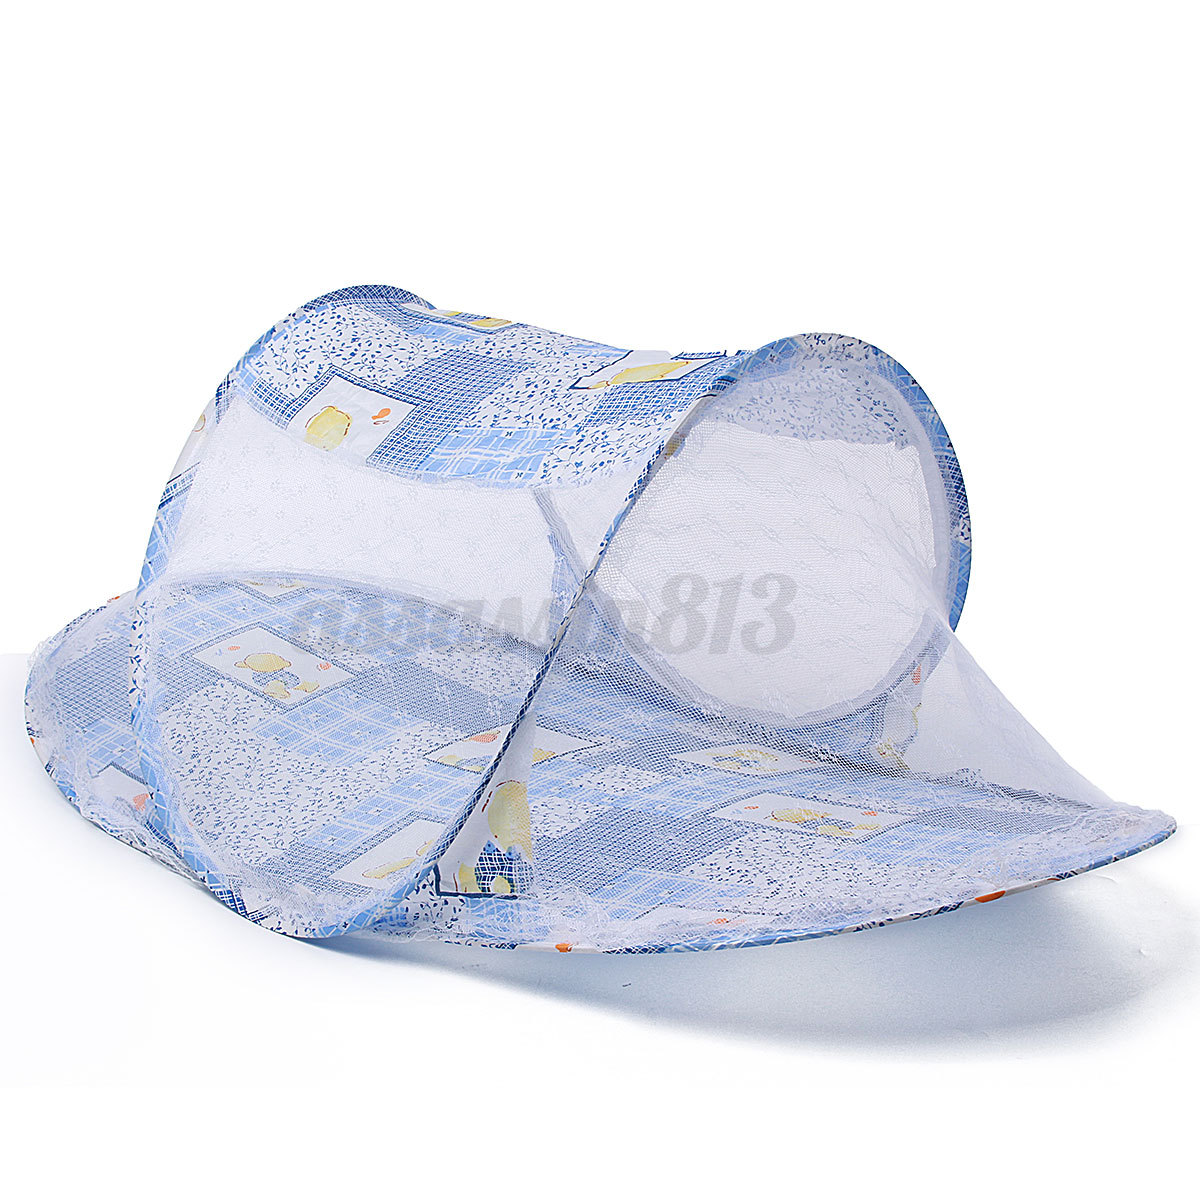 Portable Baby Kid Infant Travel Mosquito Net Bed Crib